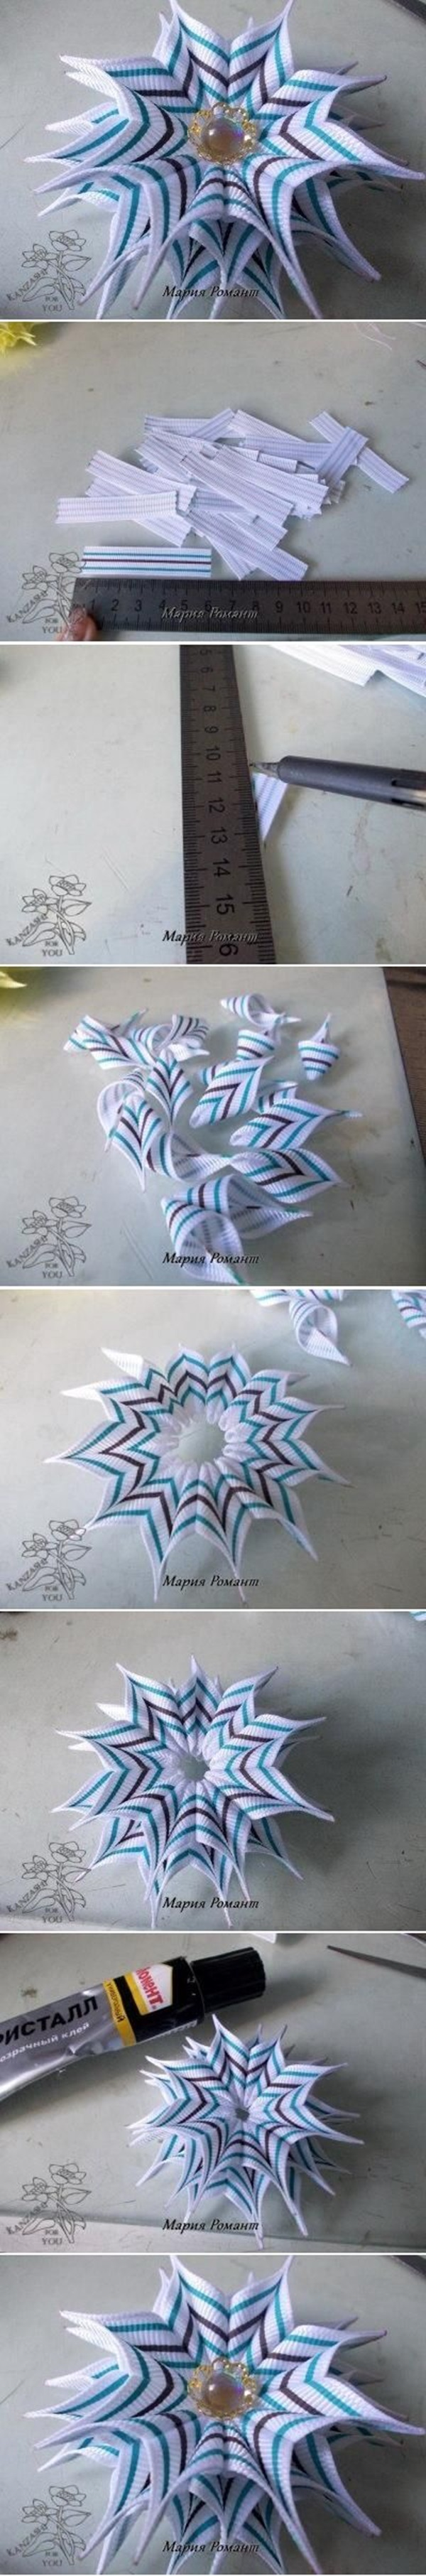 Different Ways to Use Ribbons 11